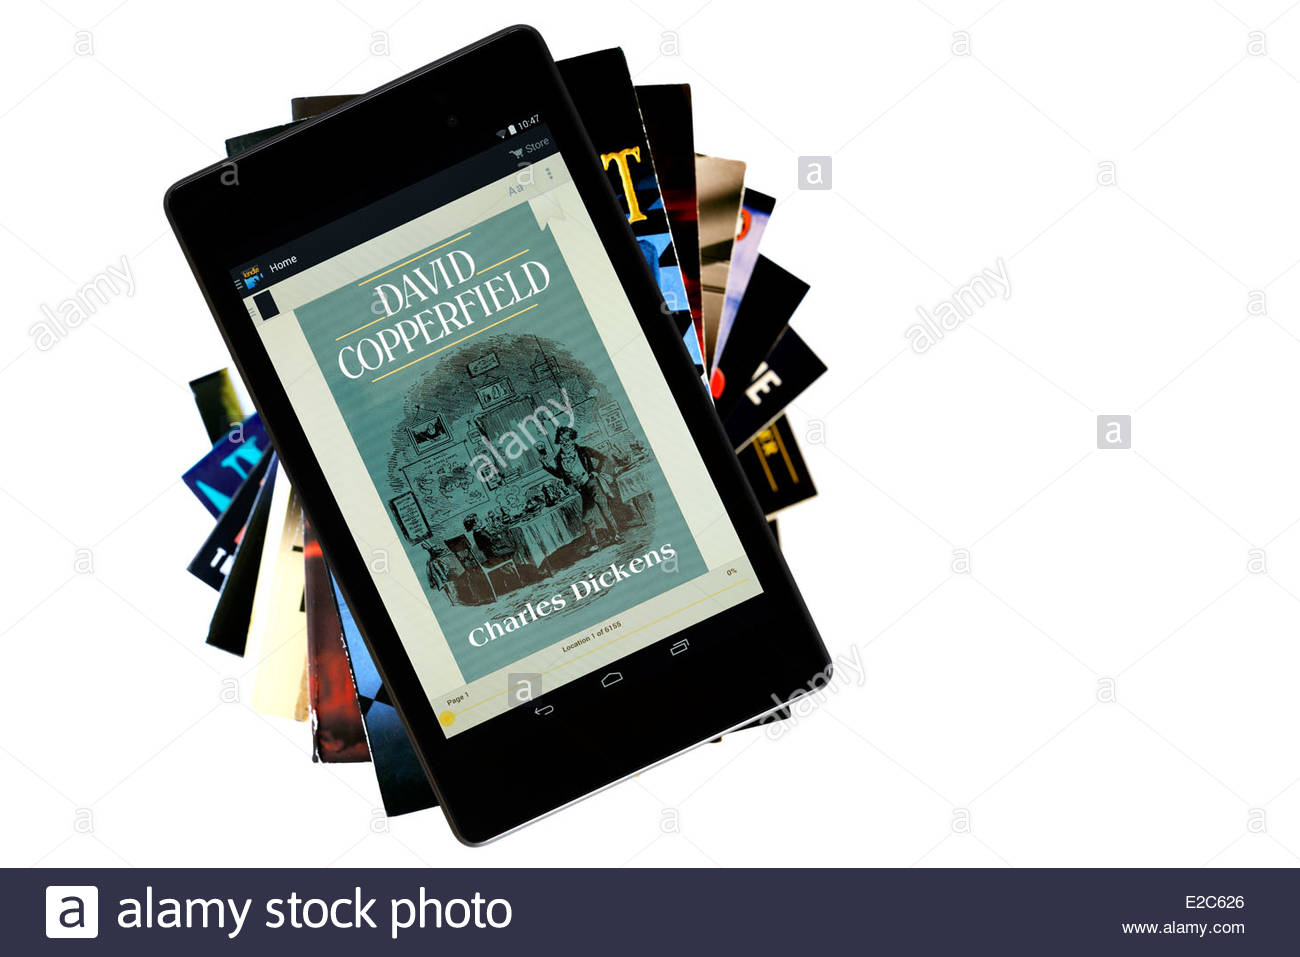 charles dickens novel david copperfield digital book cover on pc charles dickens novel david copperfield digital book cover on pc tablet england